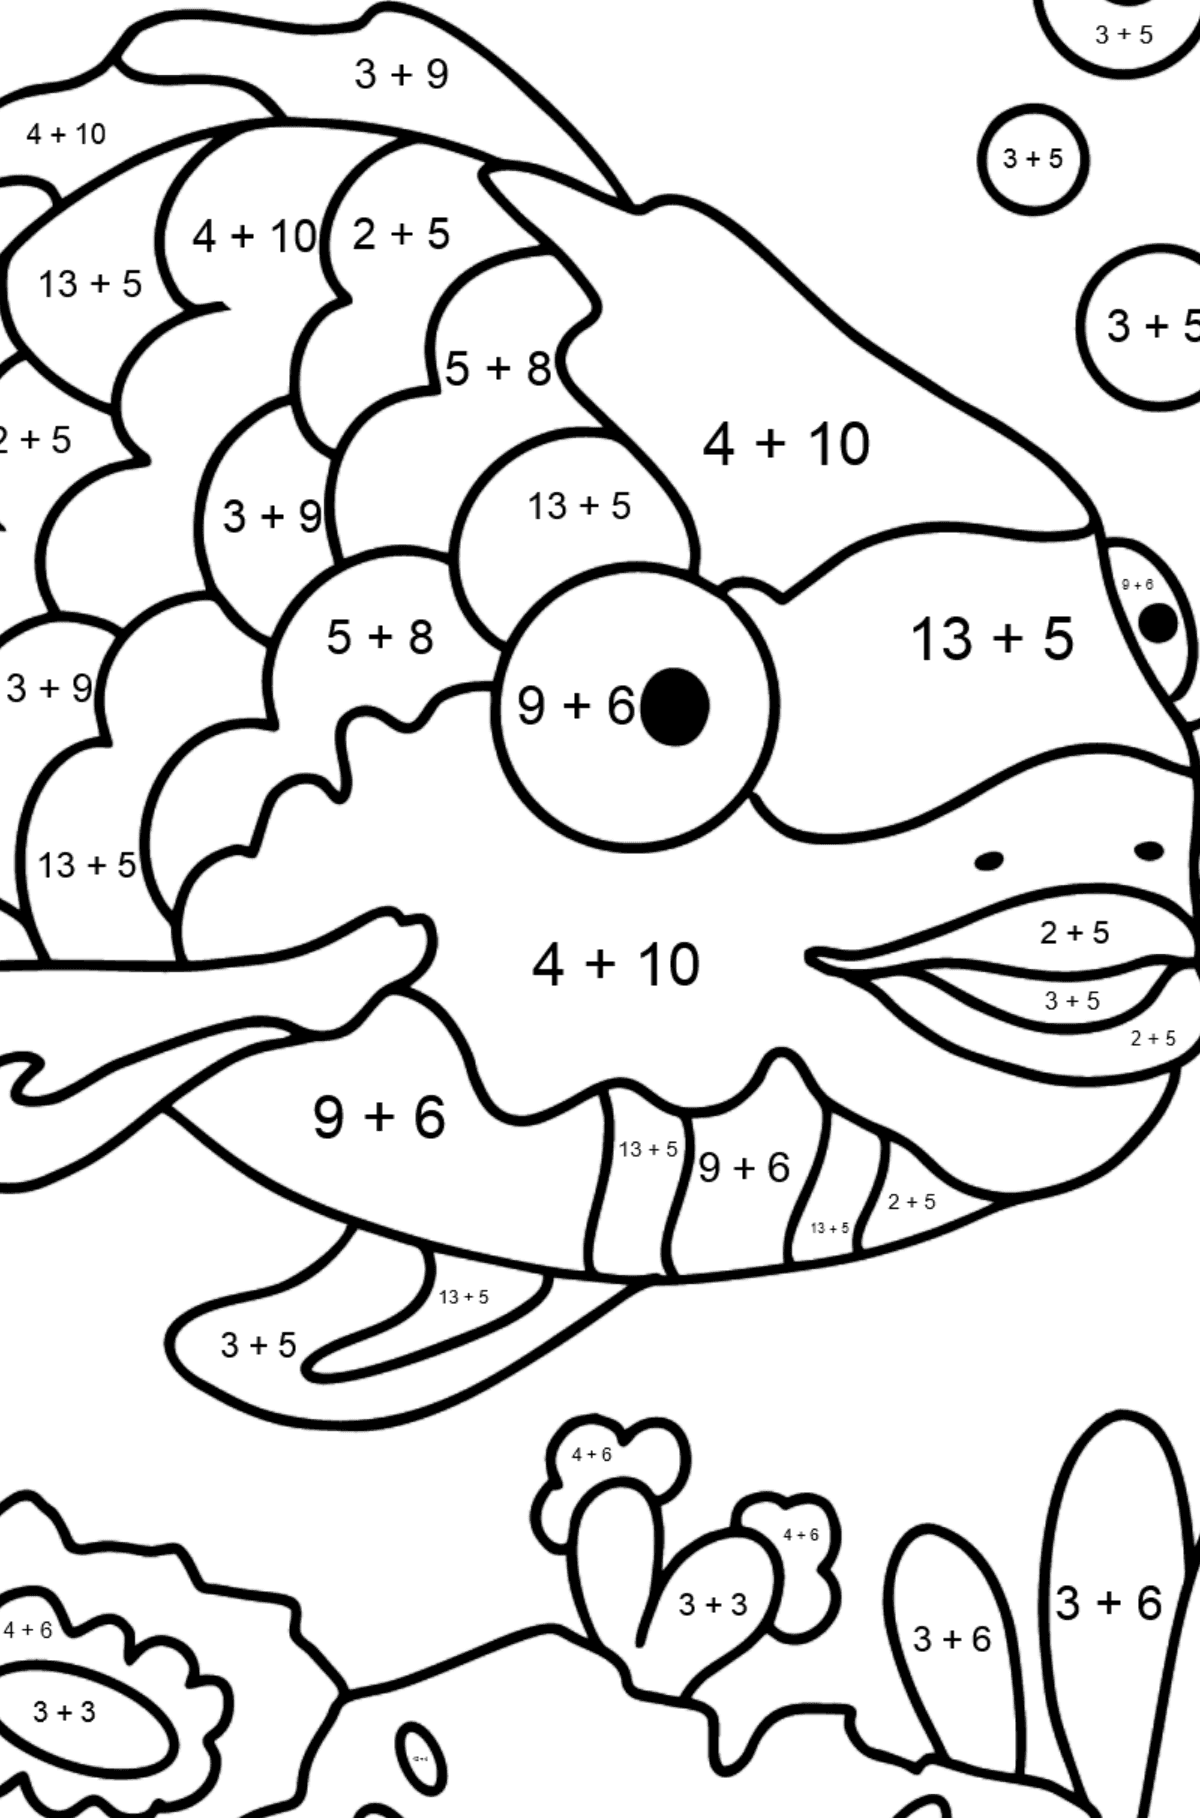 Coloring Page - An Exotic or Rainbow fish - Math Coloring - Addition for Kids